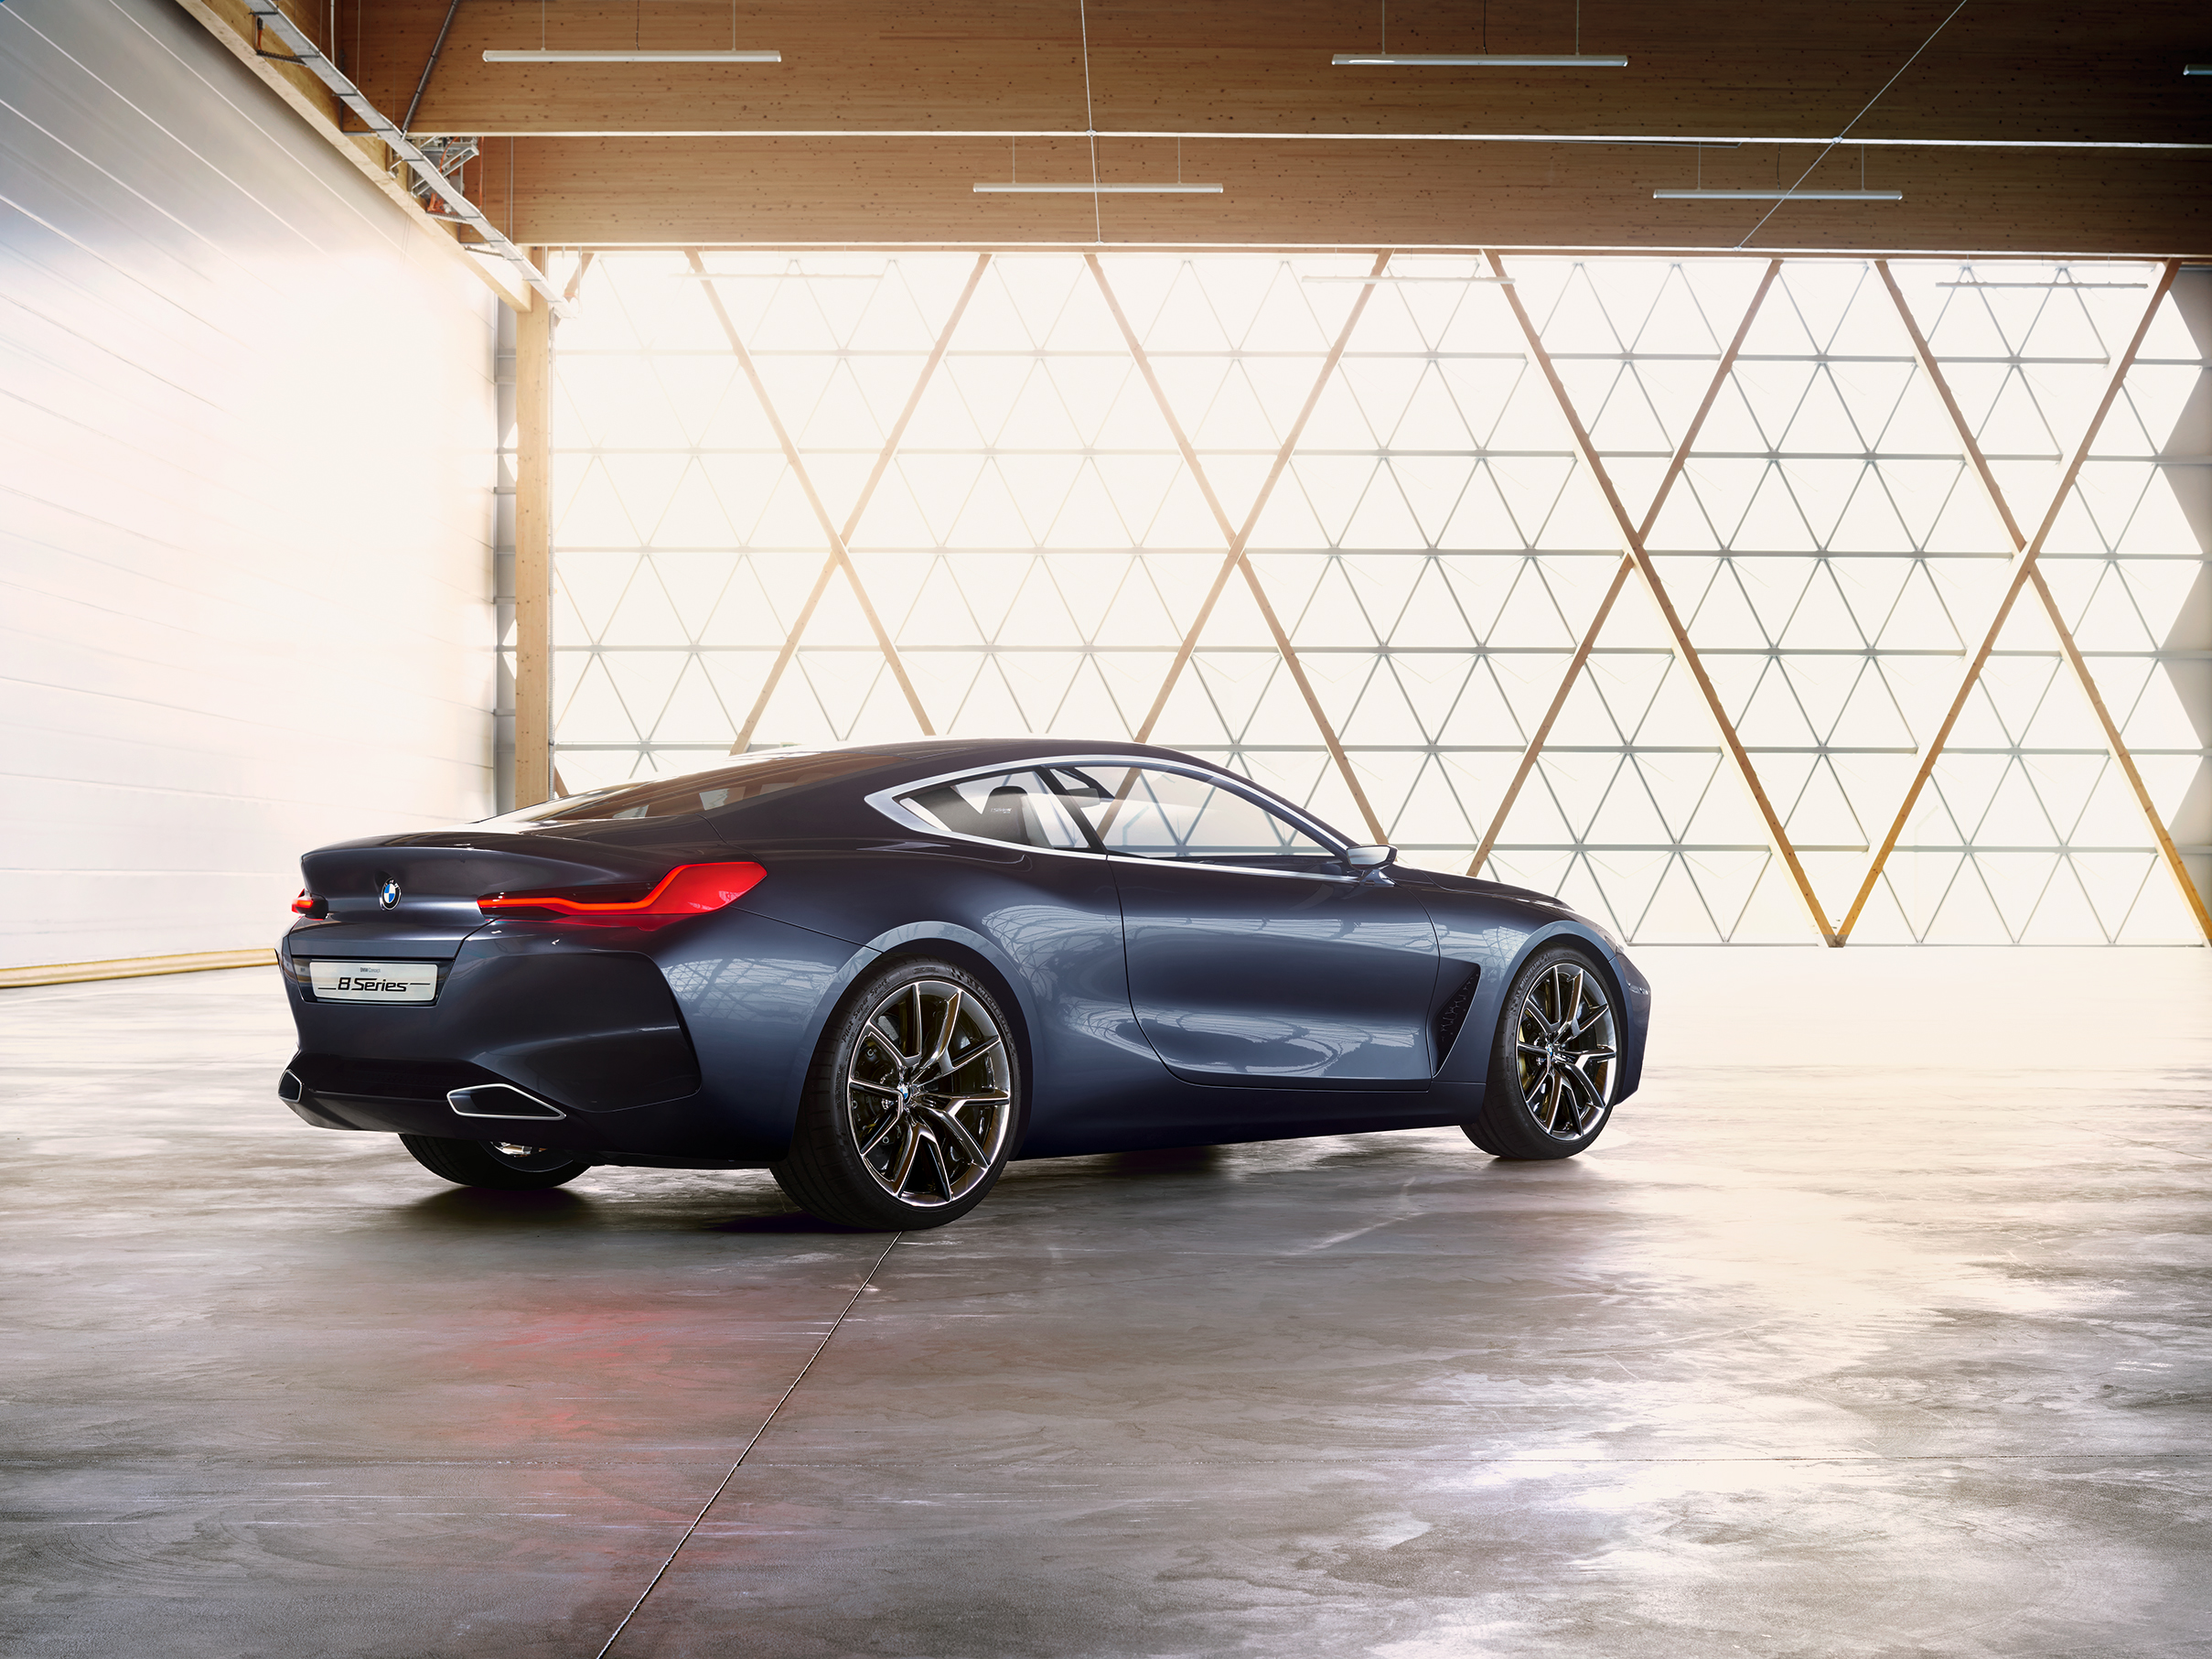 Top 10 most affordable luxury cars autospies auto news -  Surfaces And Forms Catches The Eye And Creates A Crisp Modern Look The Sharply Drawn Lines Coursing Over Taut Volumes Represent A Visual Promise Of